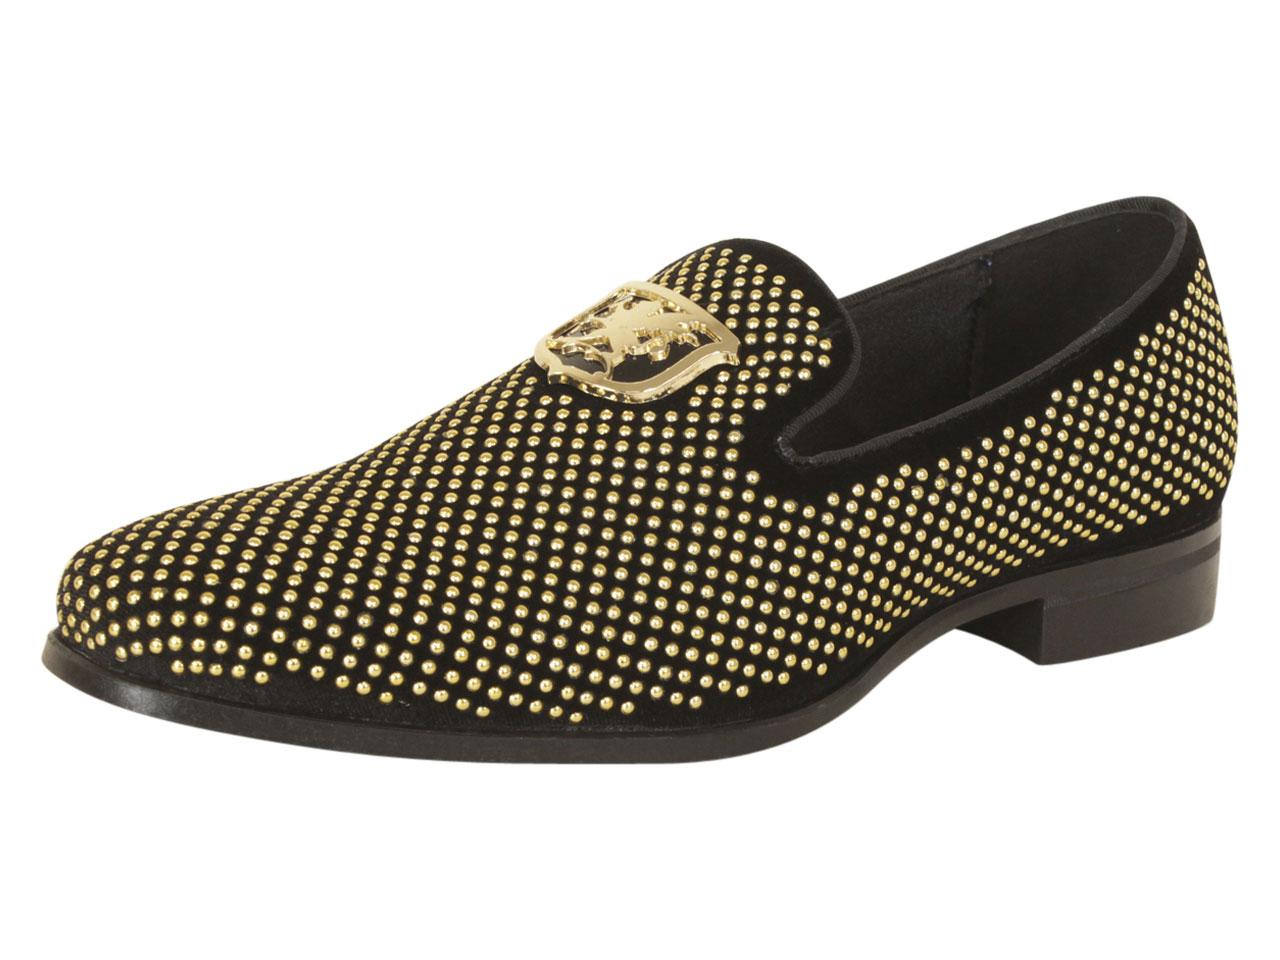 Image of - Black/Gold - 9.5 D(M) US